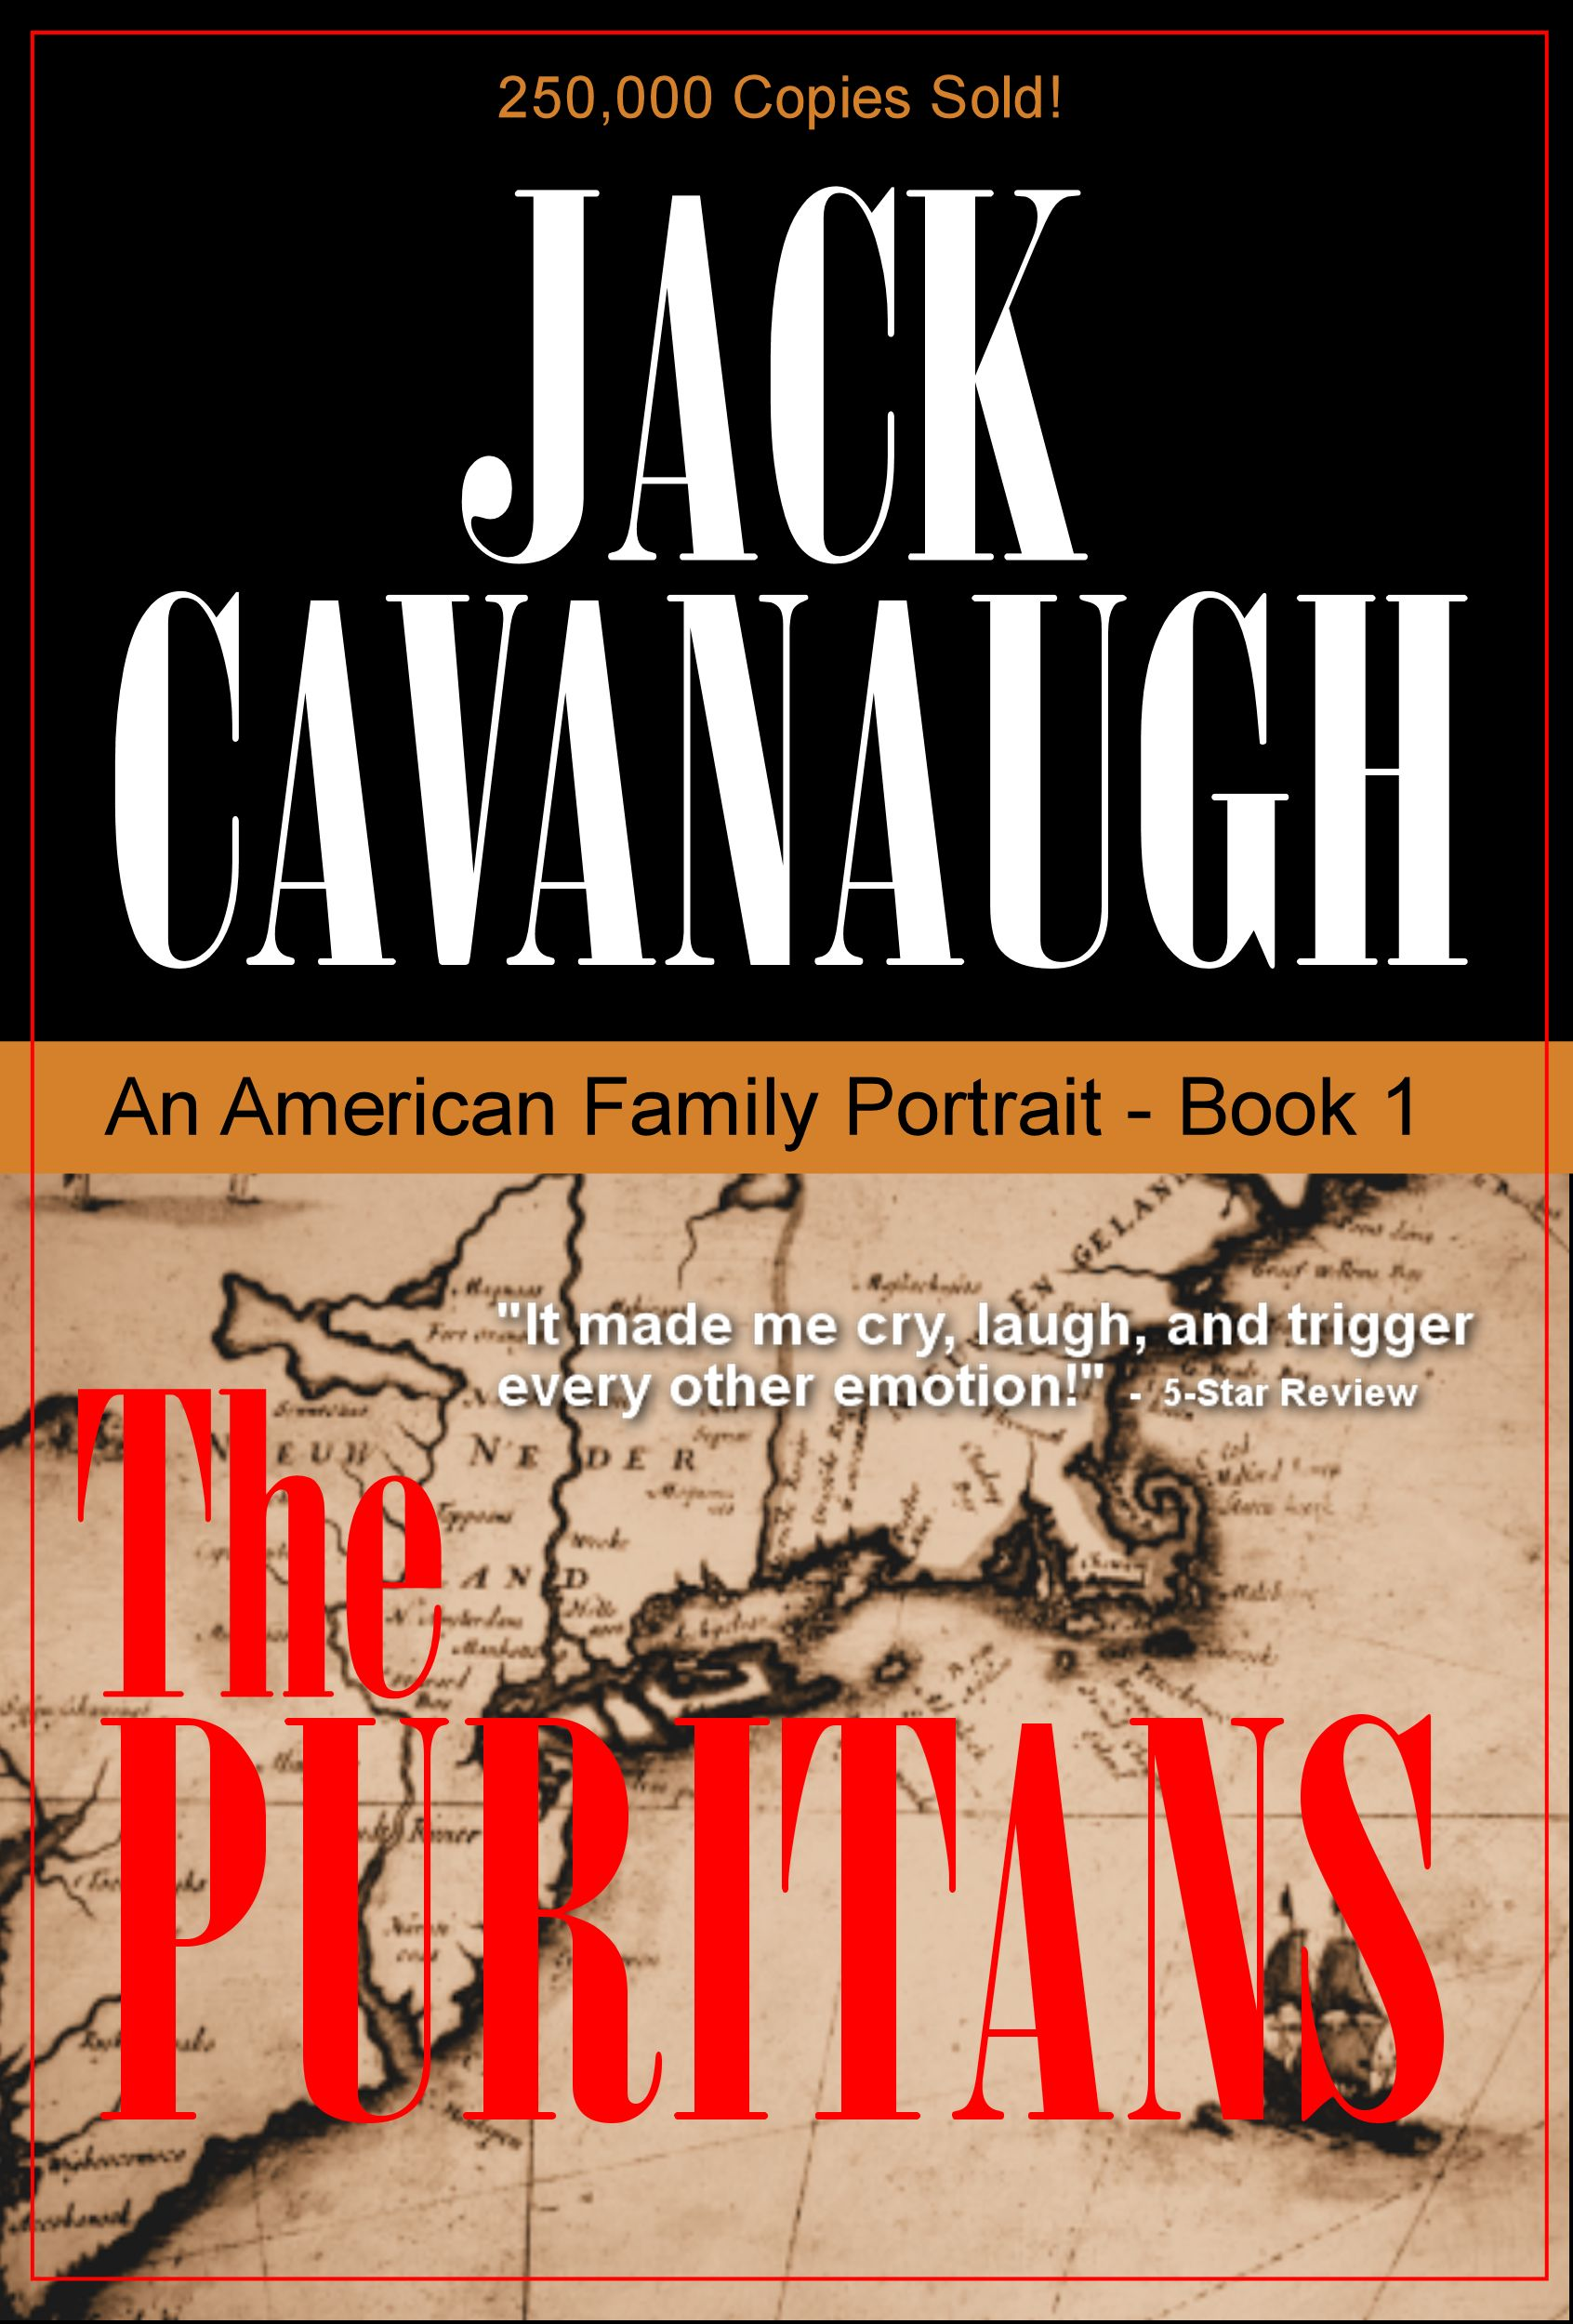 an overview of the character drew morgan in the puritans by jack cavanaugh Meet the cast and learn more about the stars of of crossing jordan with stubborn and resourceful medical examiner jordan cavanaugh revives jack slocum 2.